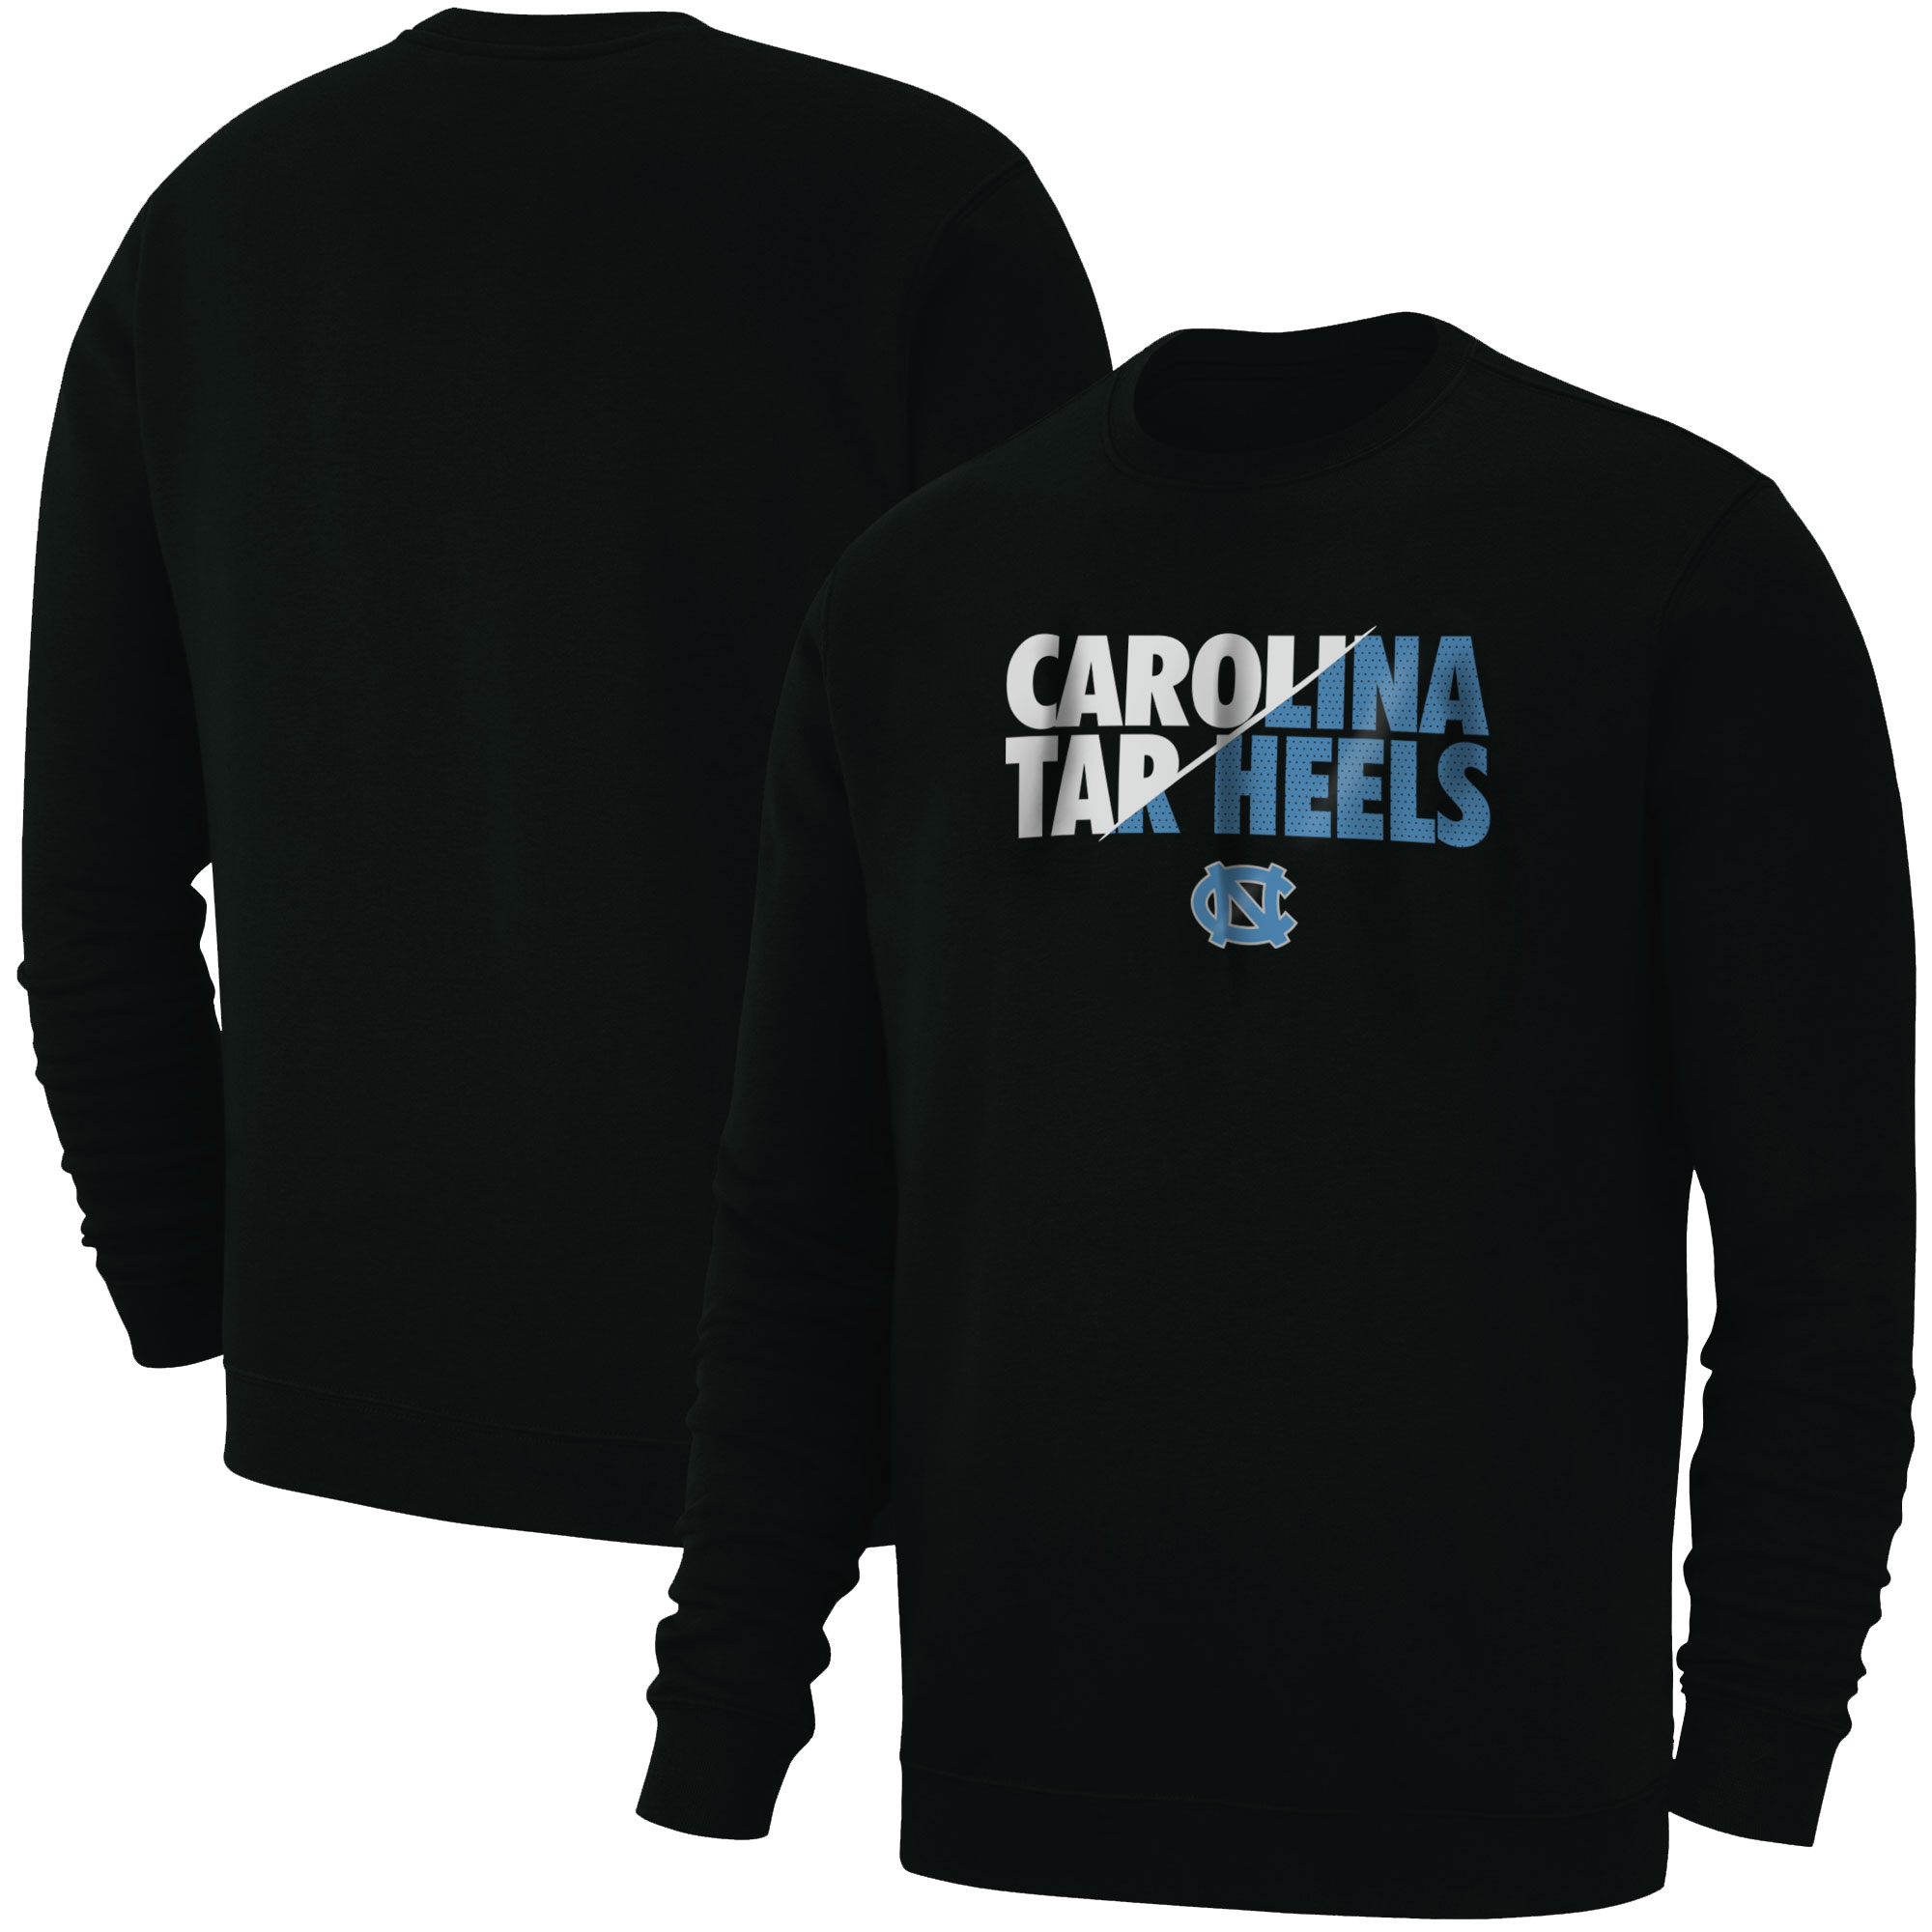 Carolina Tar Heels Basic (BSC-BLC-486-NCAA-CAROLINA-HEELS)